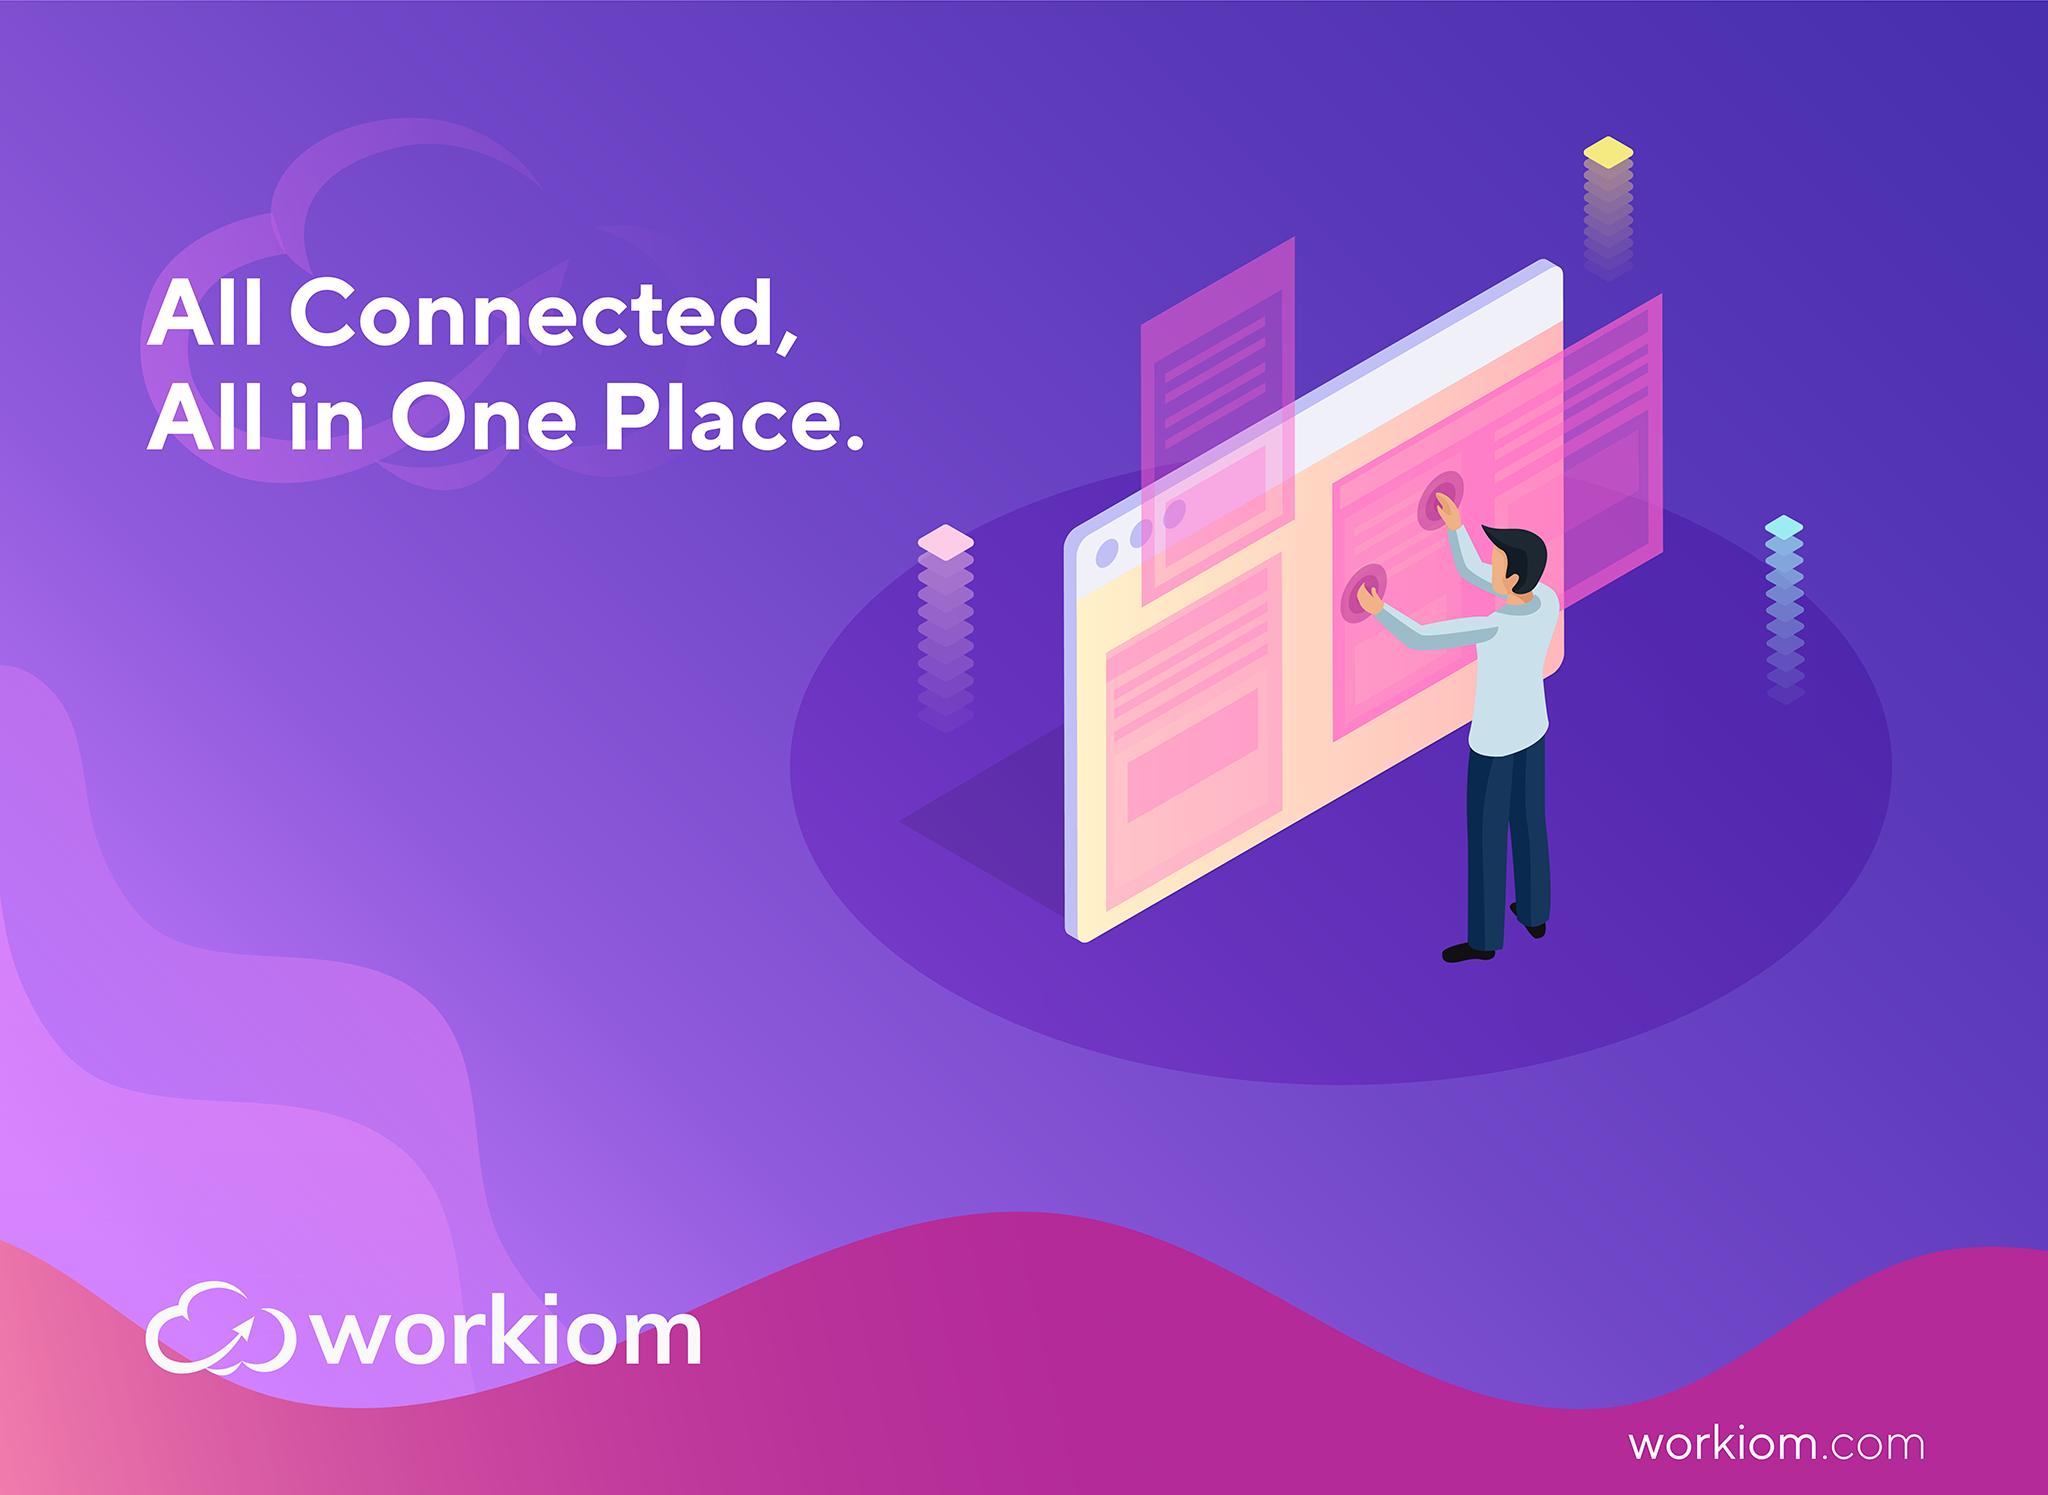 Get Started with Workiom